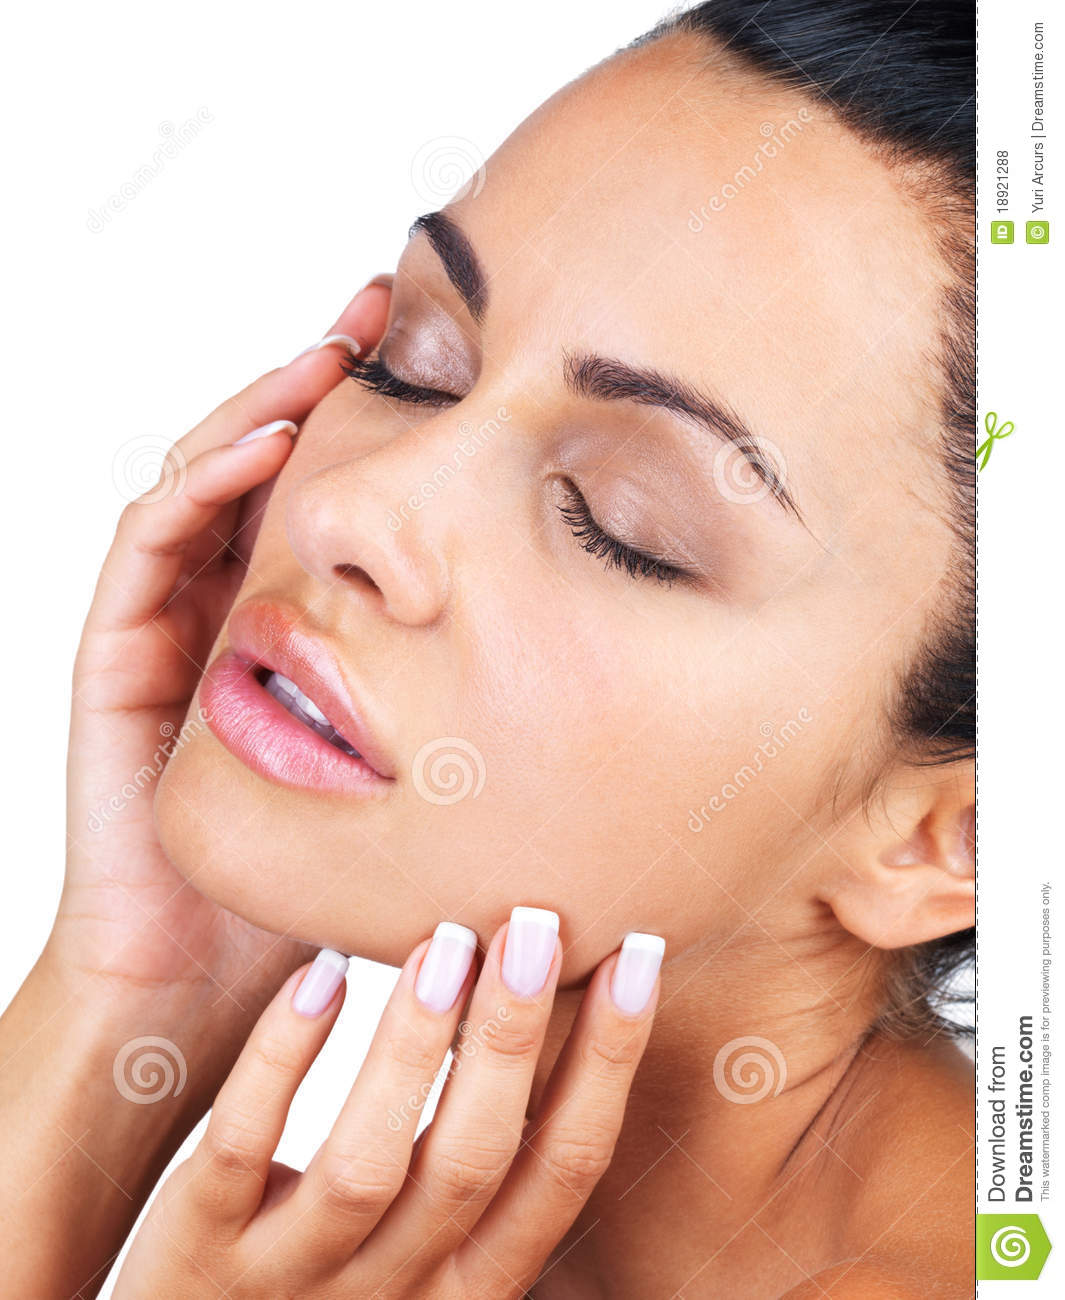 Gorgeous Young Woman Touching Her Face Stock Photo - Image